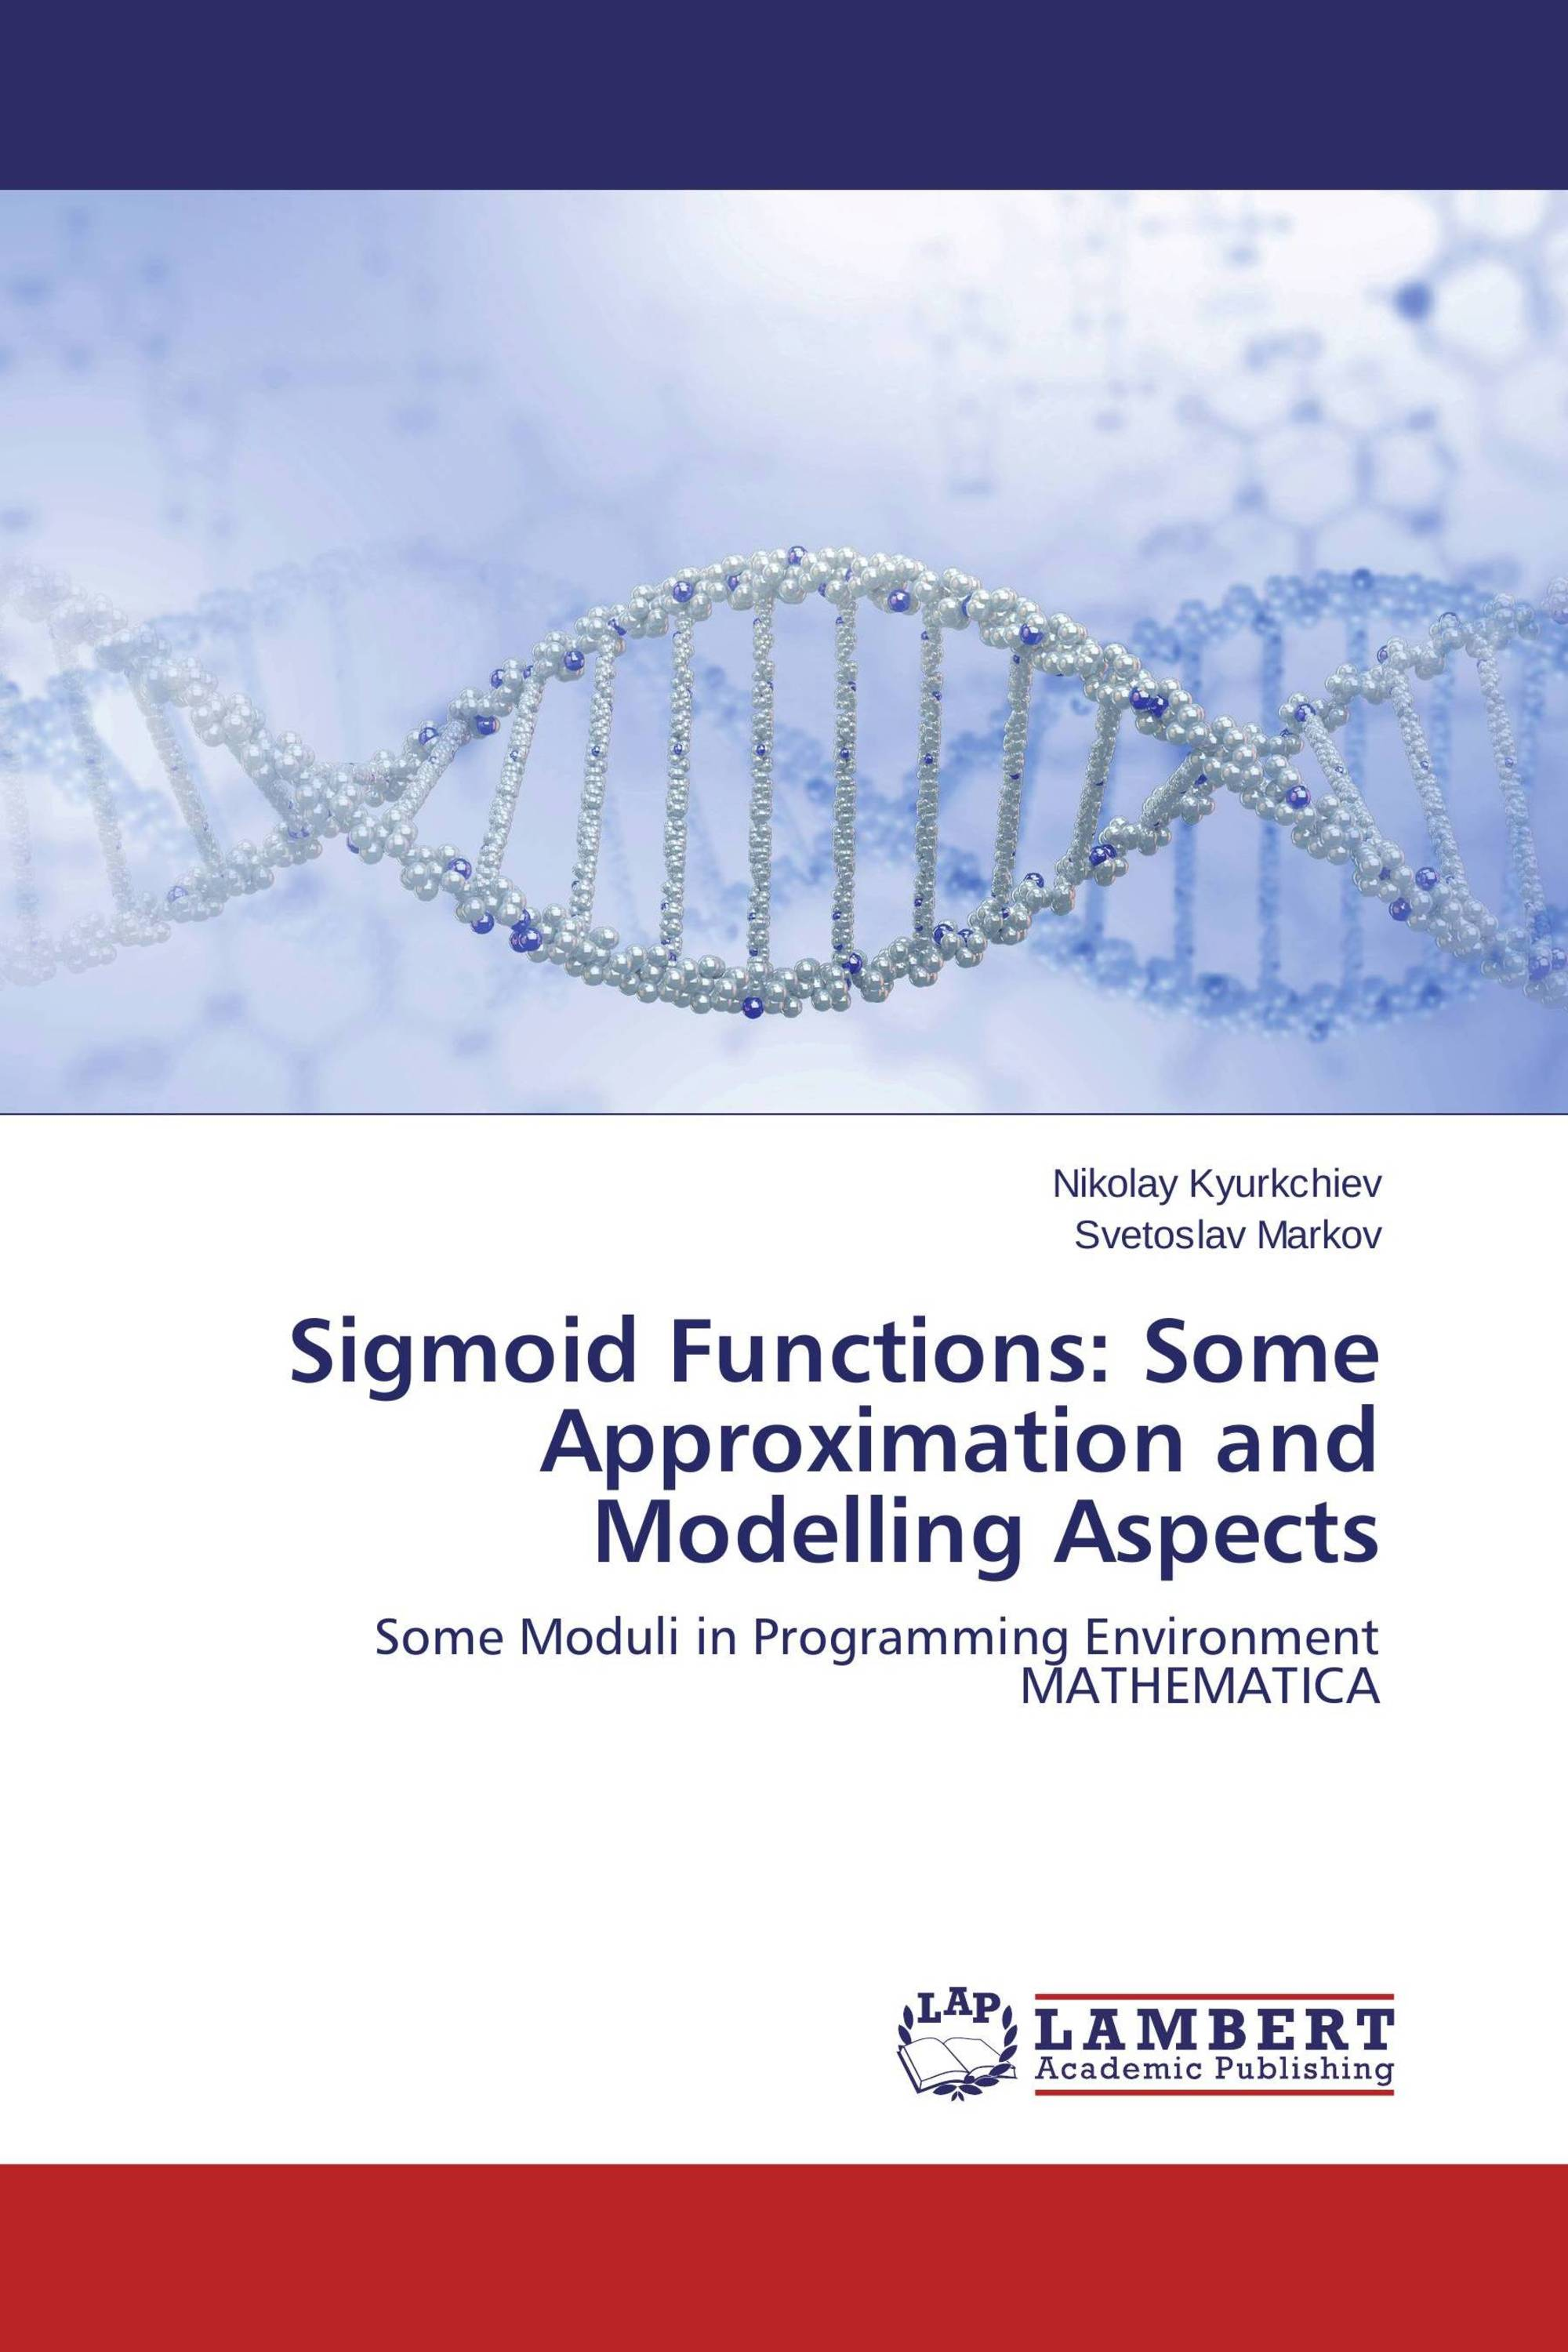 Sigmoid Functions: Some Approximation and Modelling Aspects